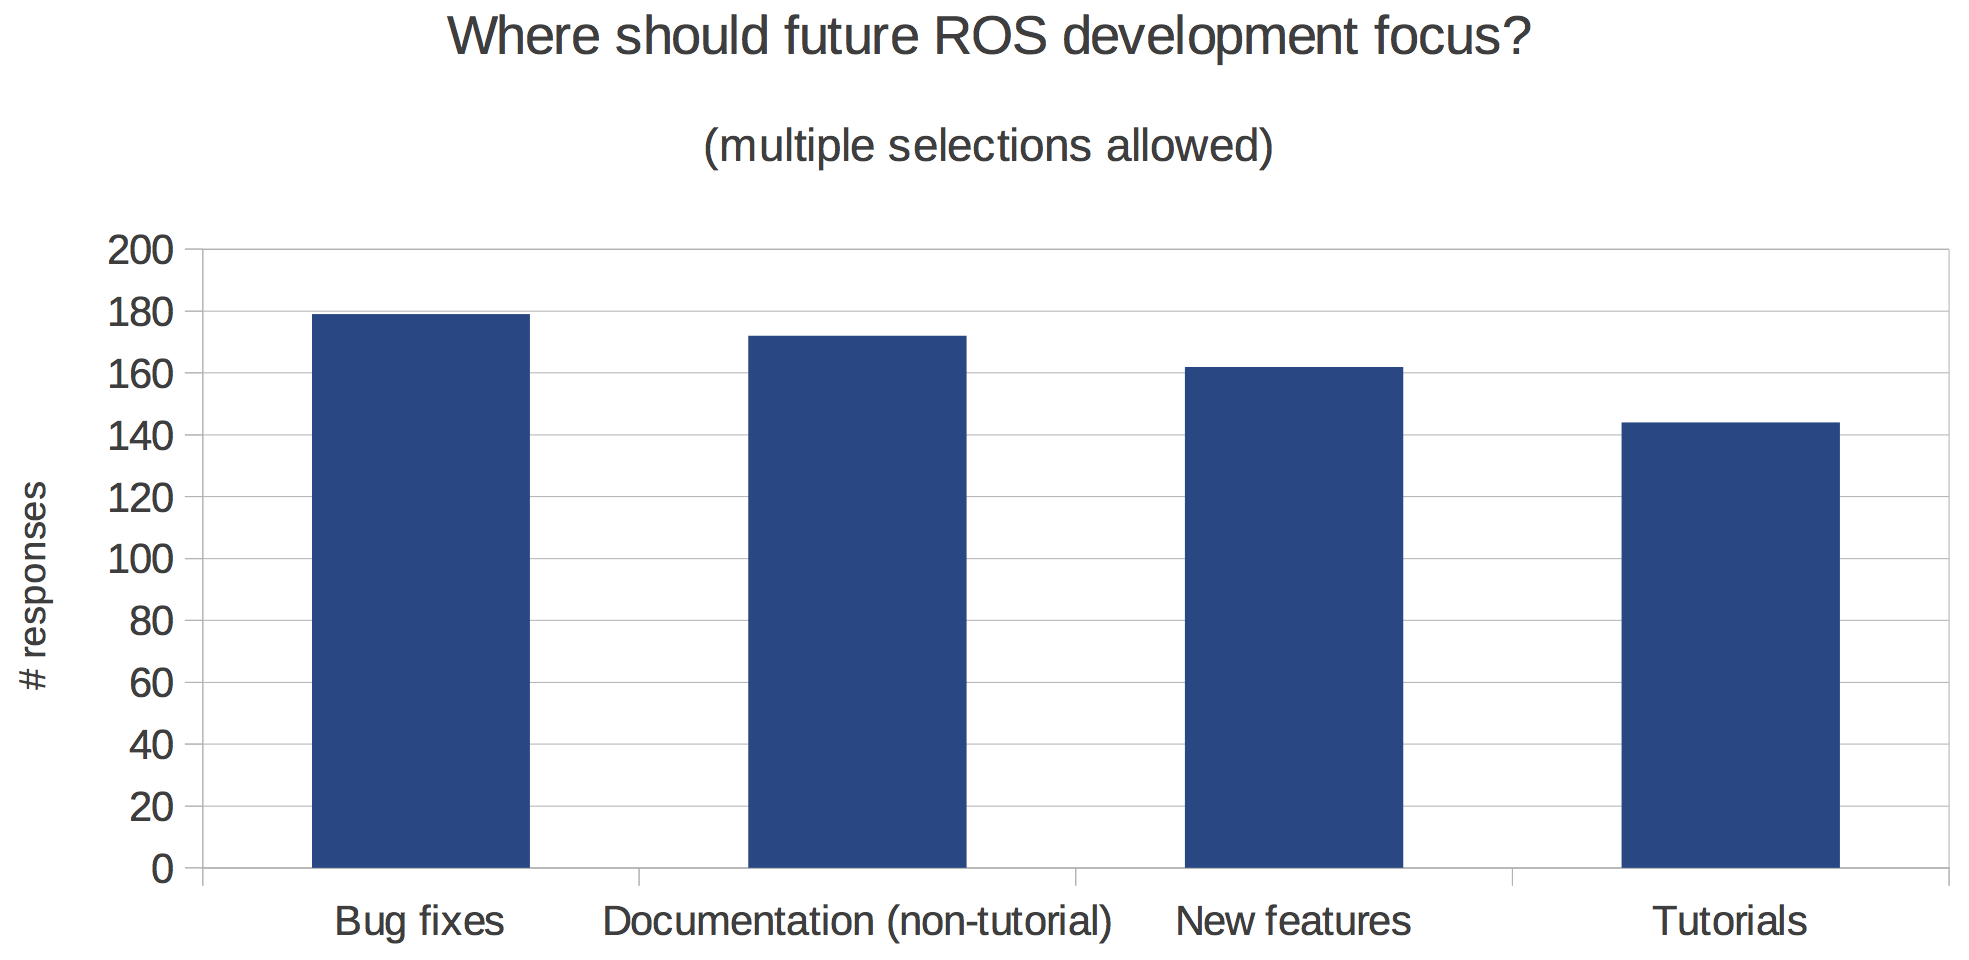 http://www.ros.org/news/2014/04/01/future-development.png